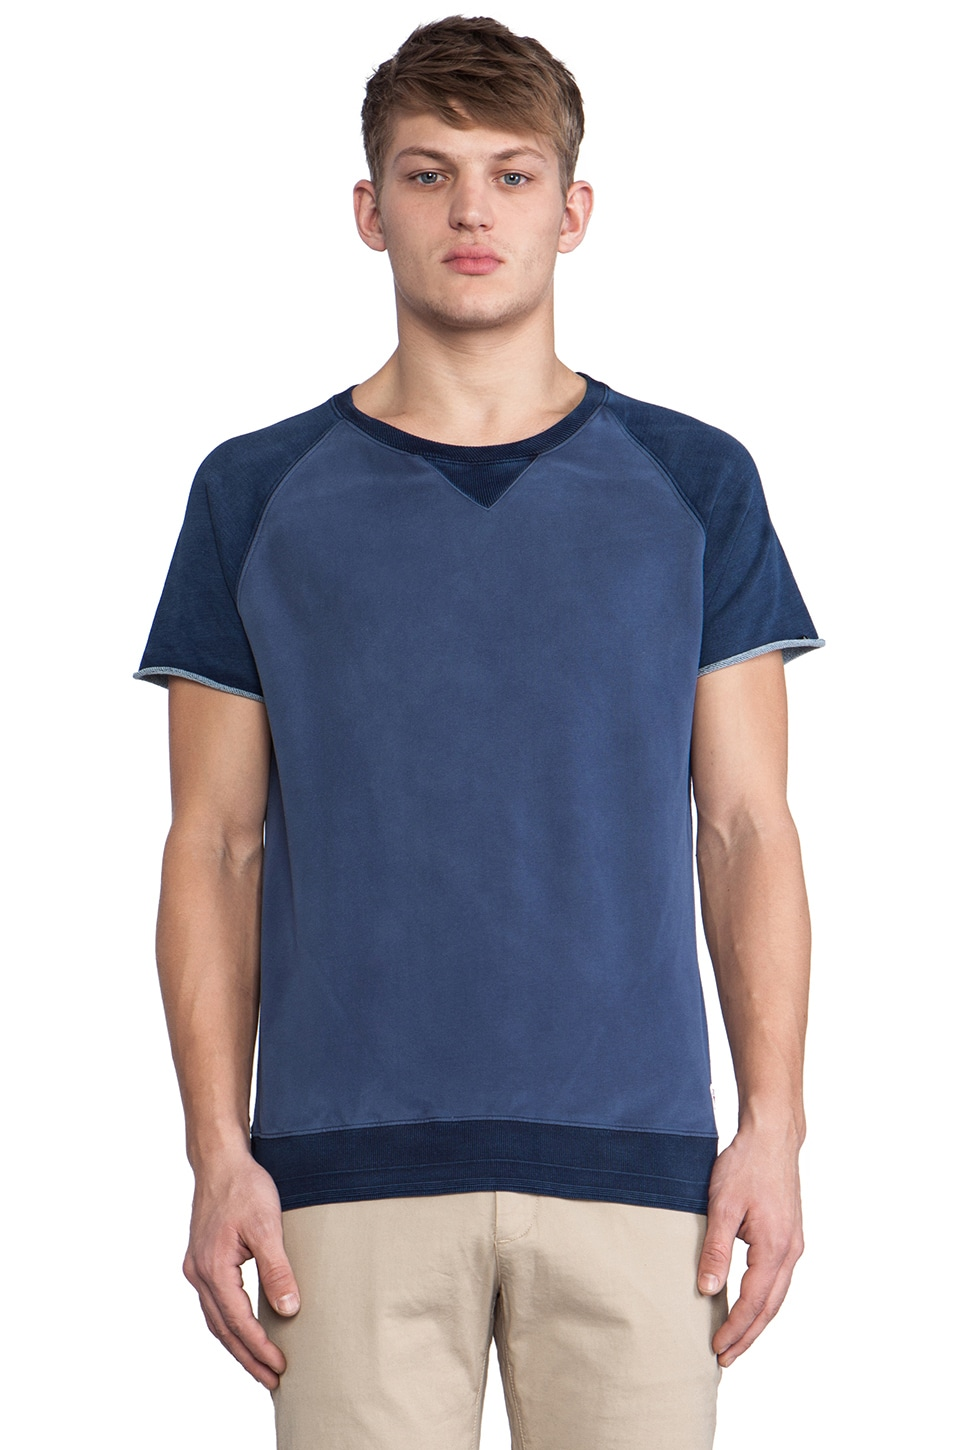 Scotch & Soda Short Sleeve Raglan Sweatshirt in Navy